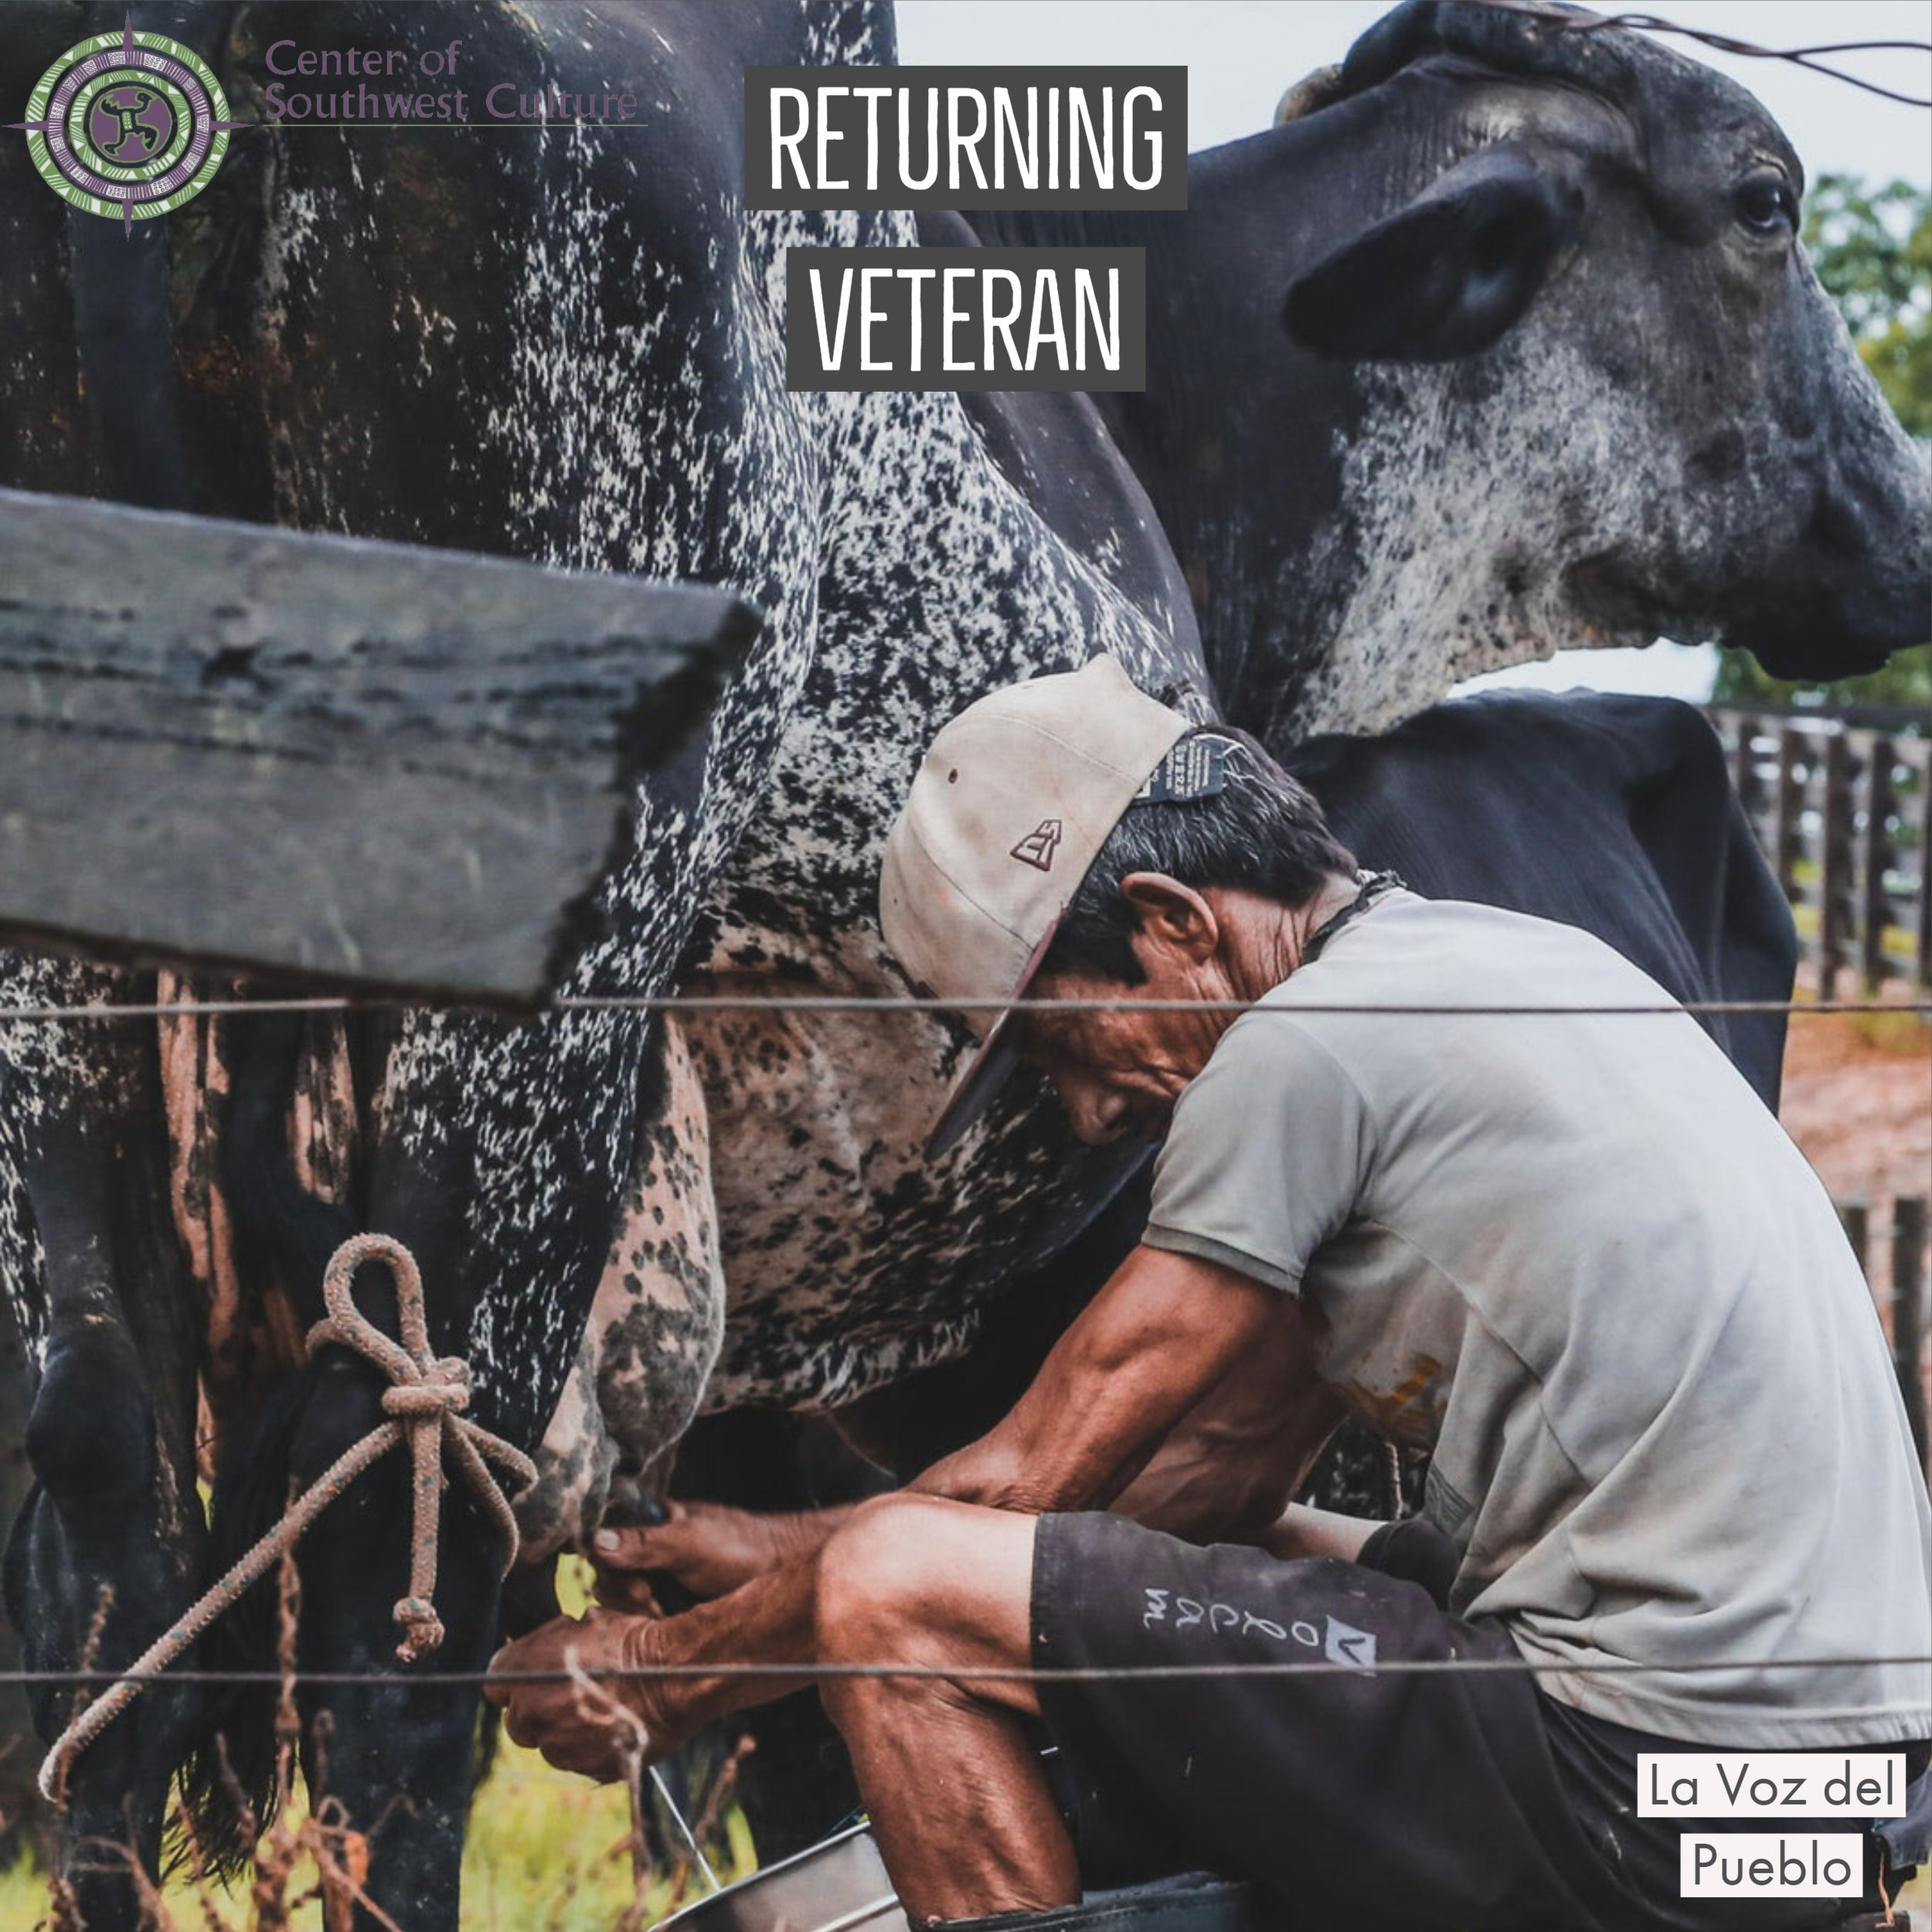 Returning Veteran - If you are a returning veteran and want to start a farm in NM, visit the USDA veterans' website can help you learn more about employment, education, and entrepreneurship on or beyond the farm.